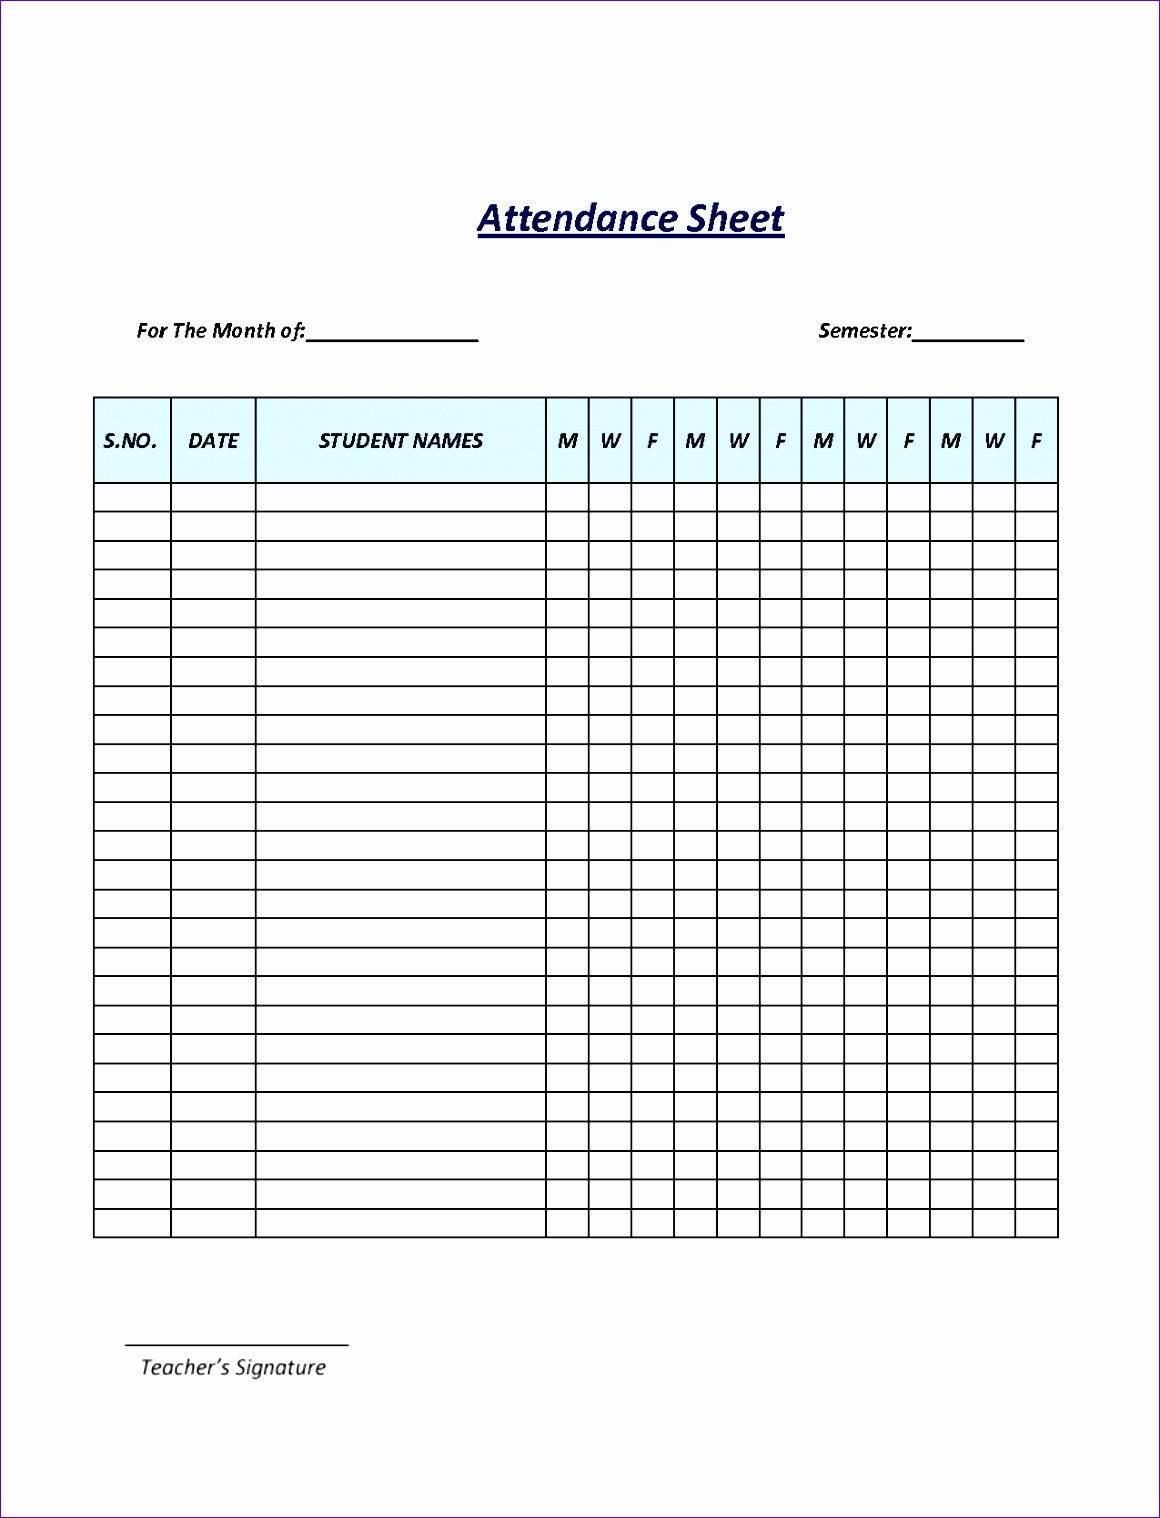 attendance template word general liability waiver printable 7 best images of sheet free employee post agreement for services agenda meeting apartment lease templates audit form